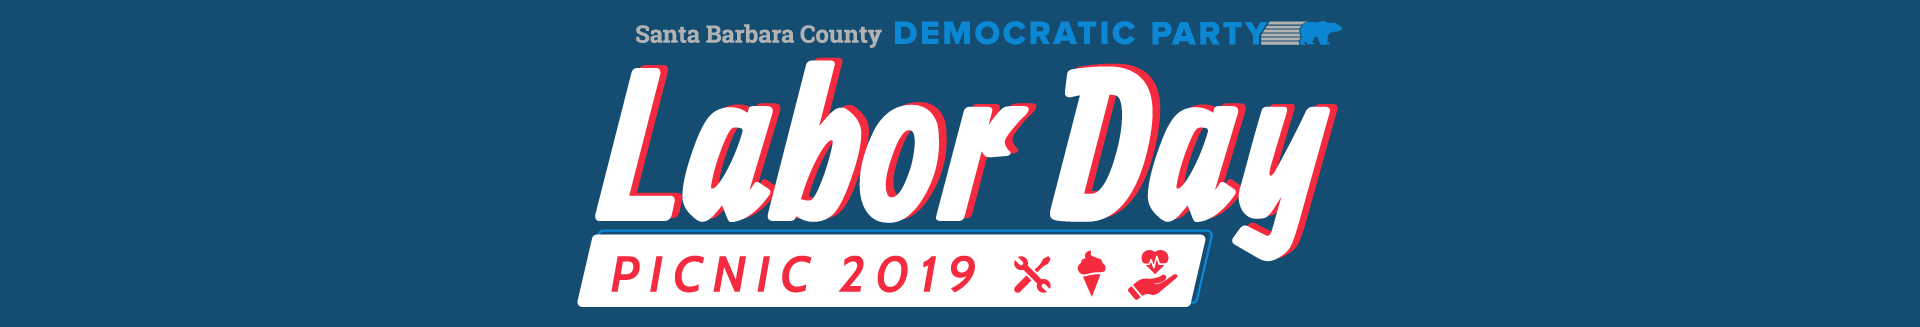 Santa Barbara County Democratic Central Committee Federal PAC